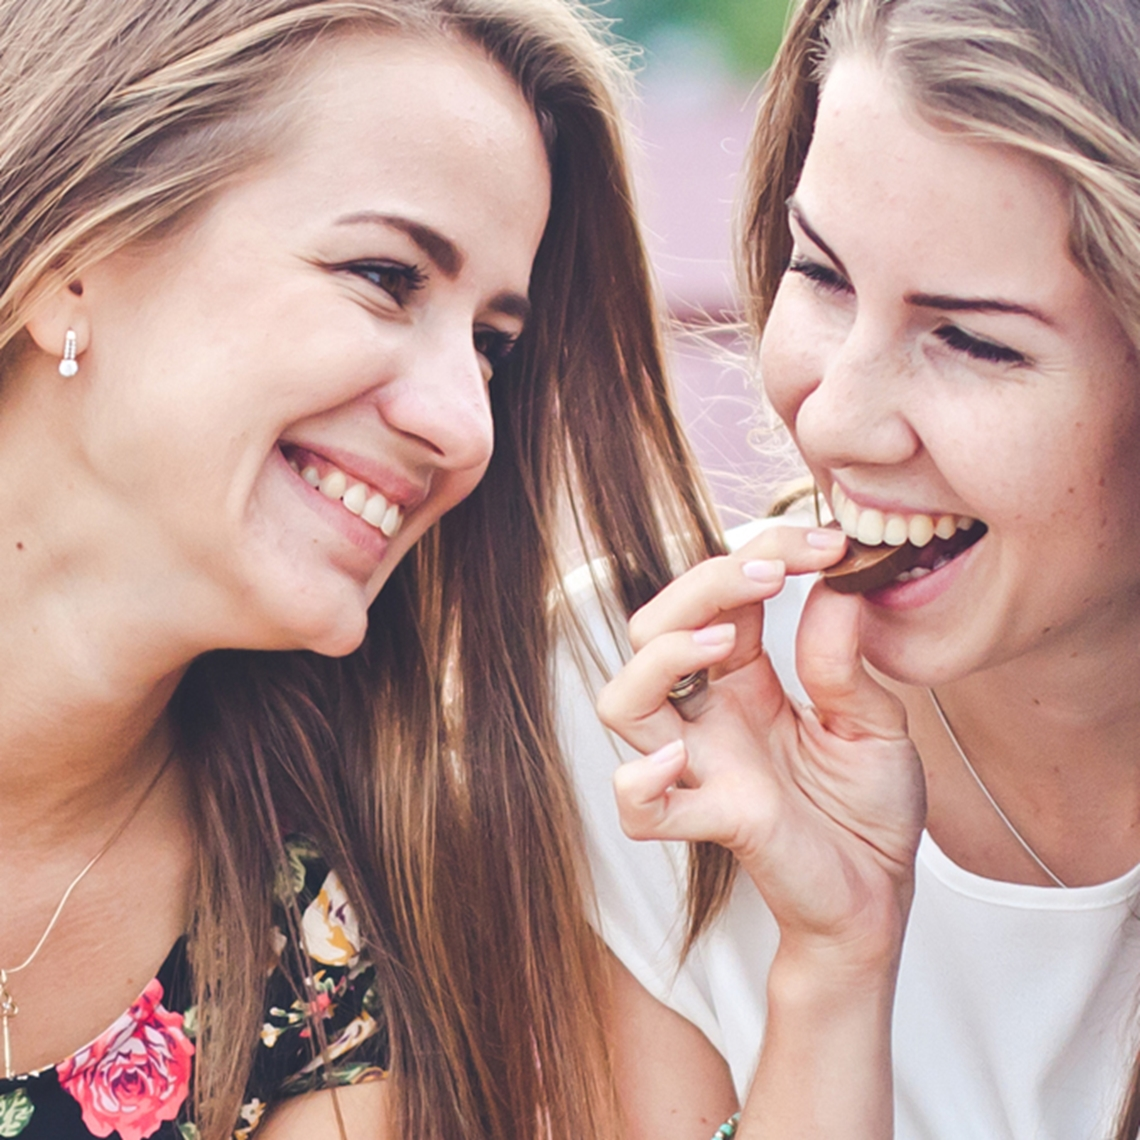 Smiling Women Eating Chocolate - Chocolate and Confectionery - AAK